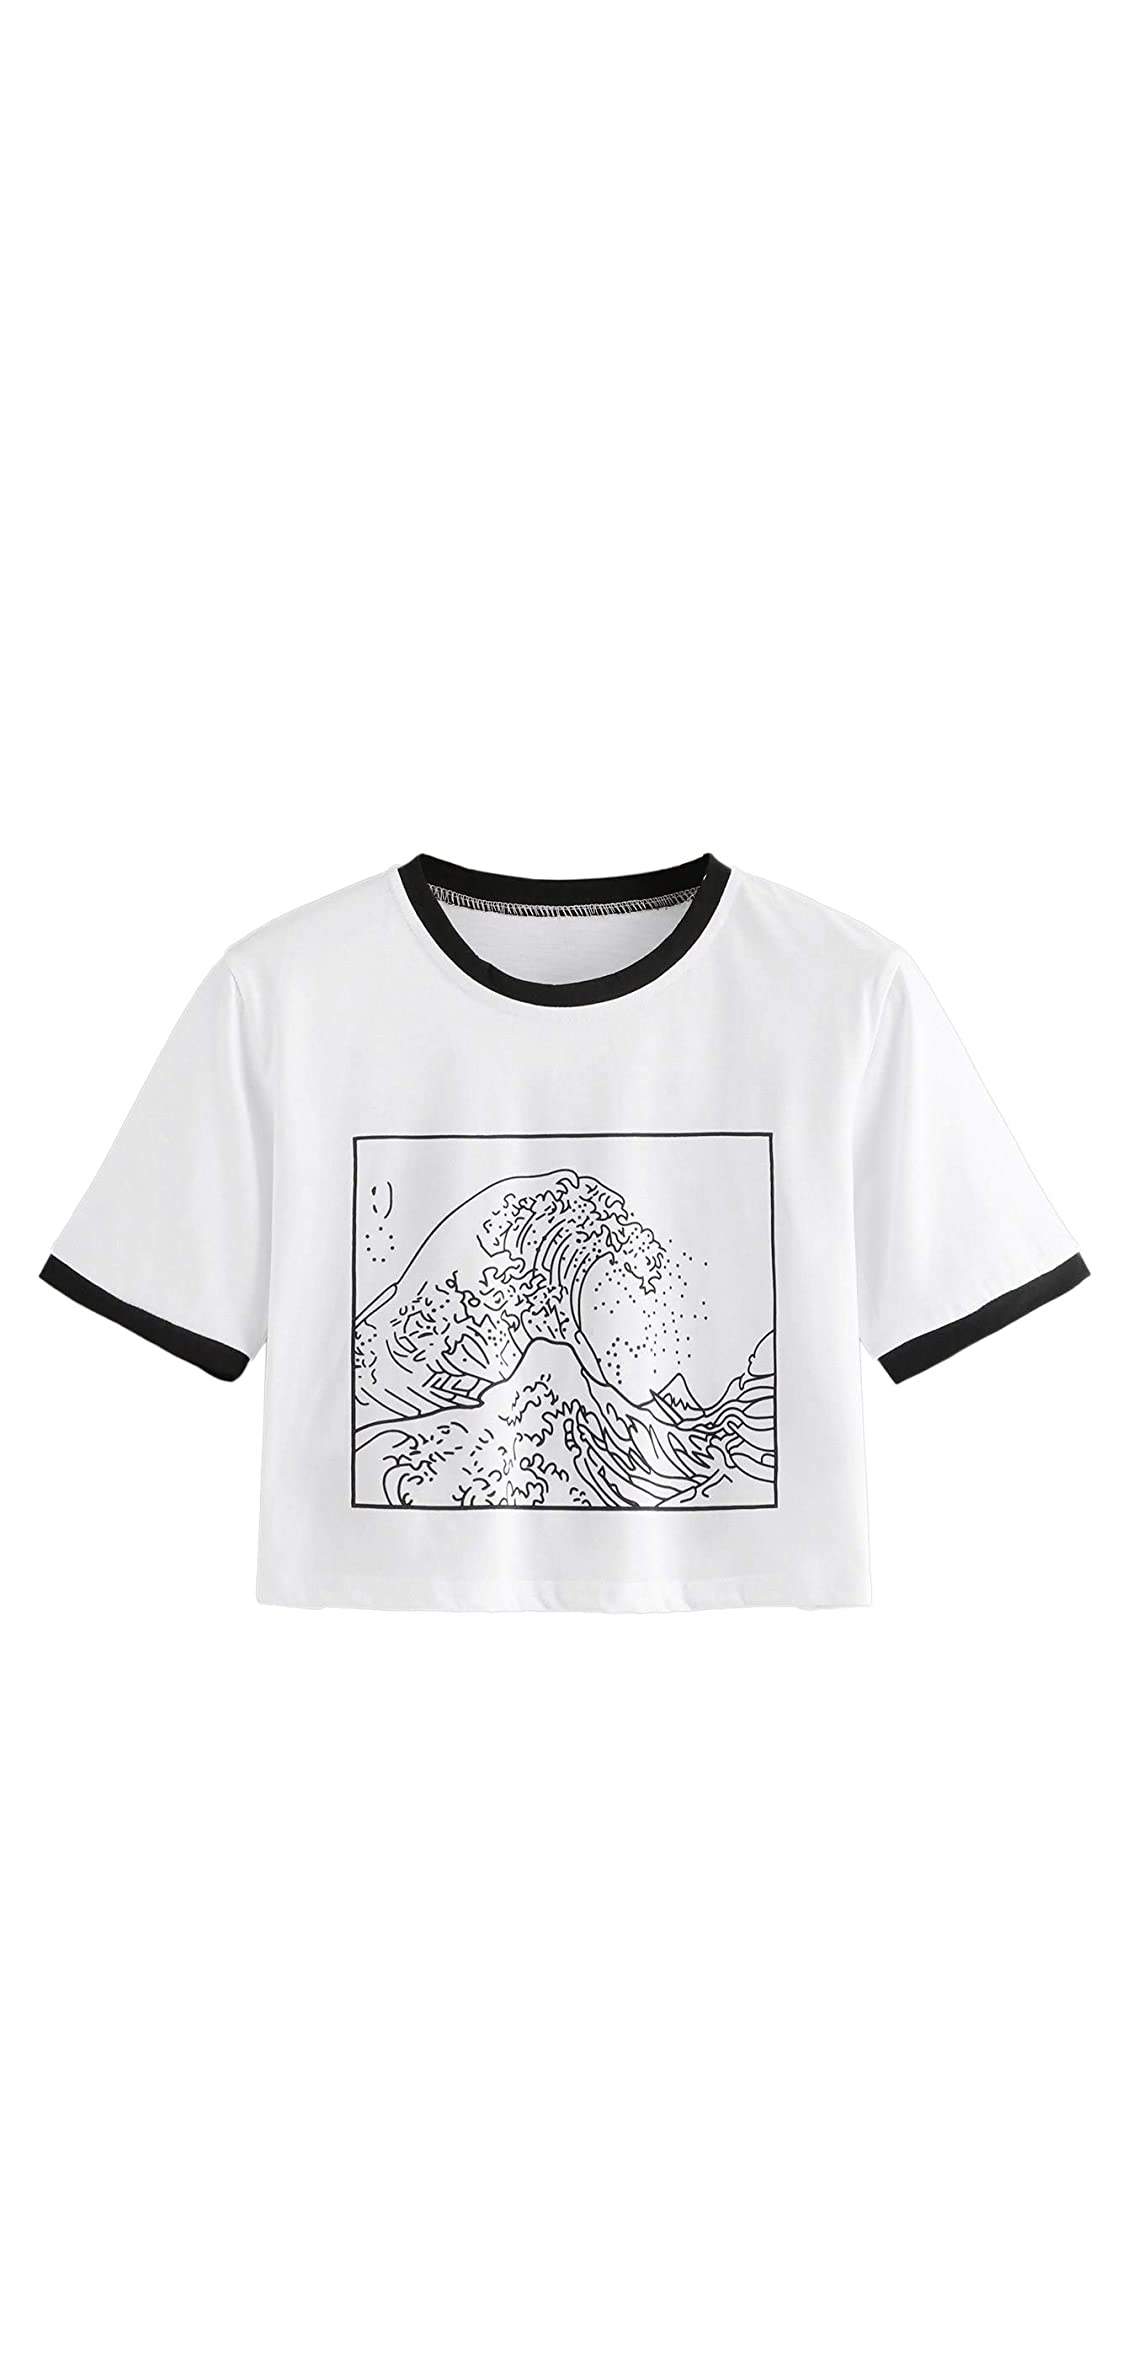 Women's Short Sleeve Top The Great Wave Off Kanagawa Print